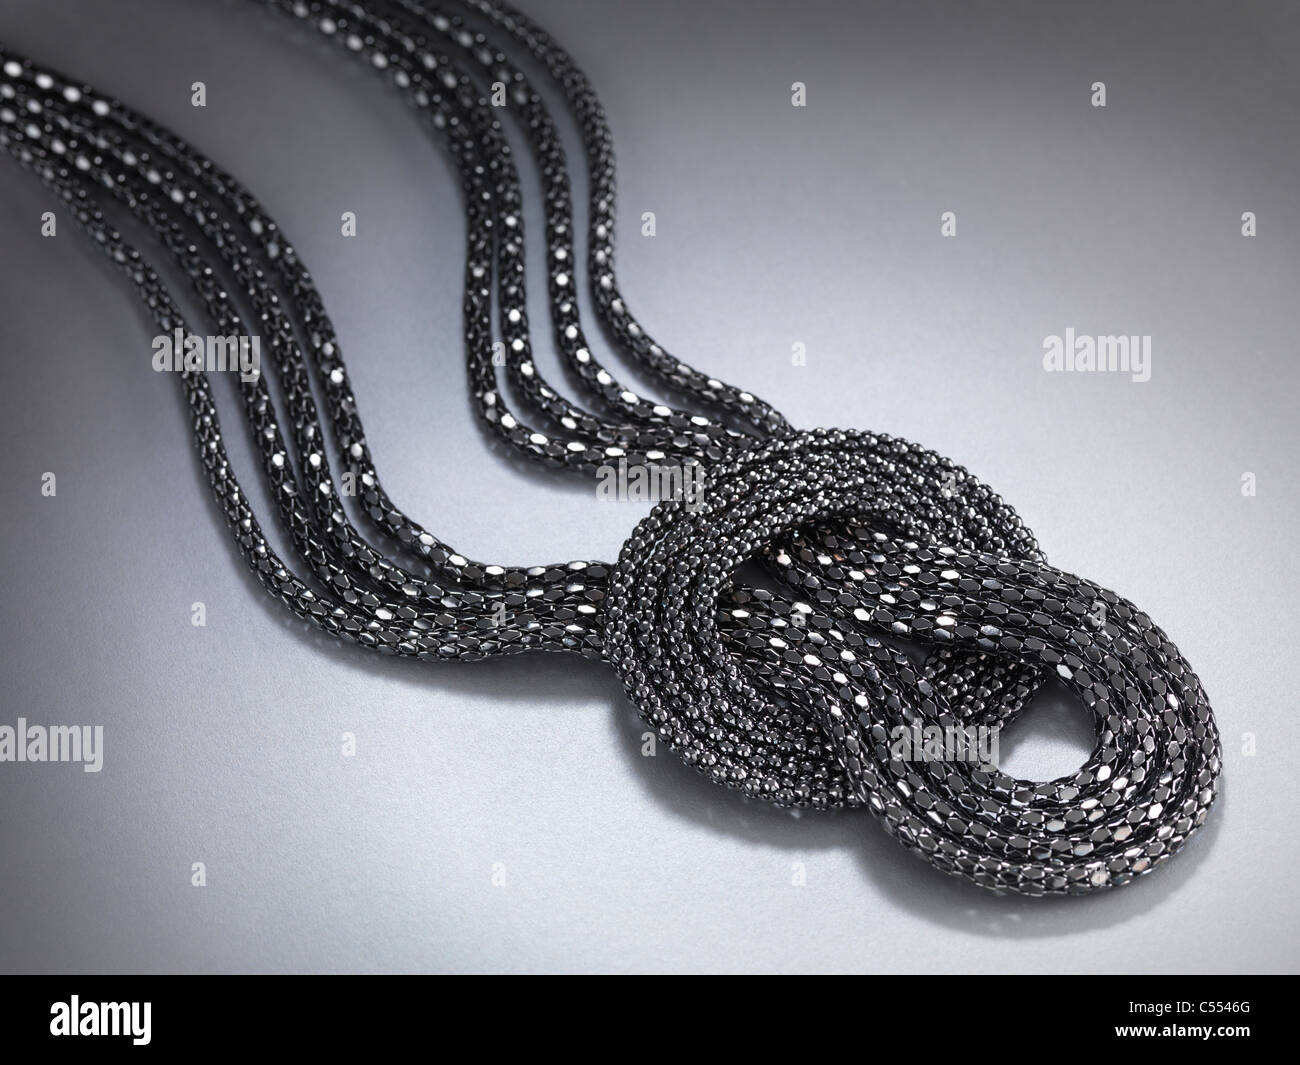 Necklace jewellery isolated on gray background - Stock Image